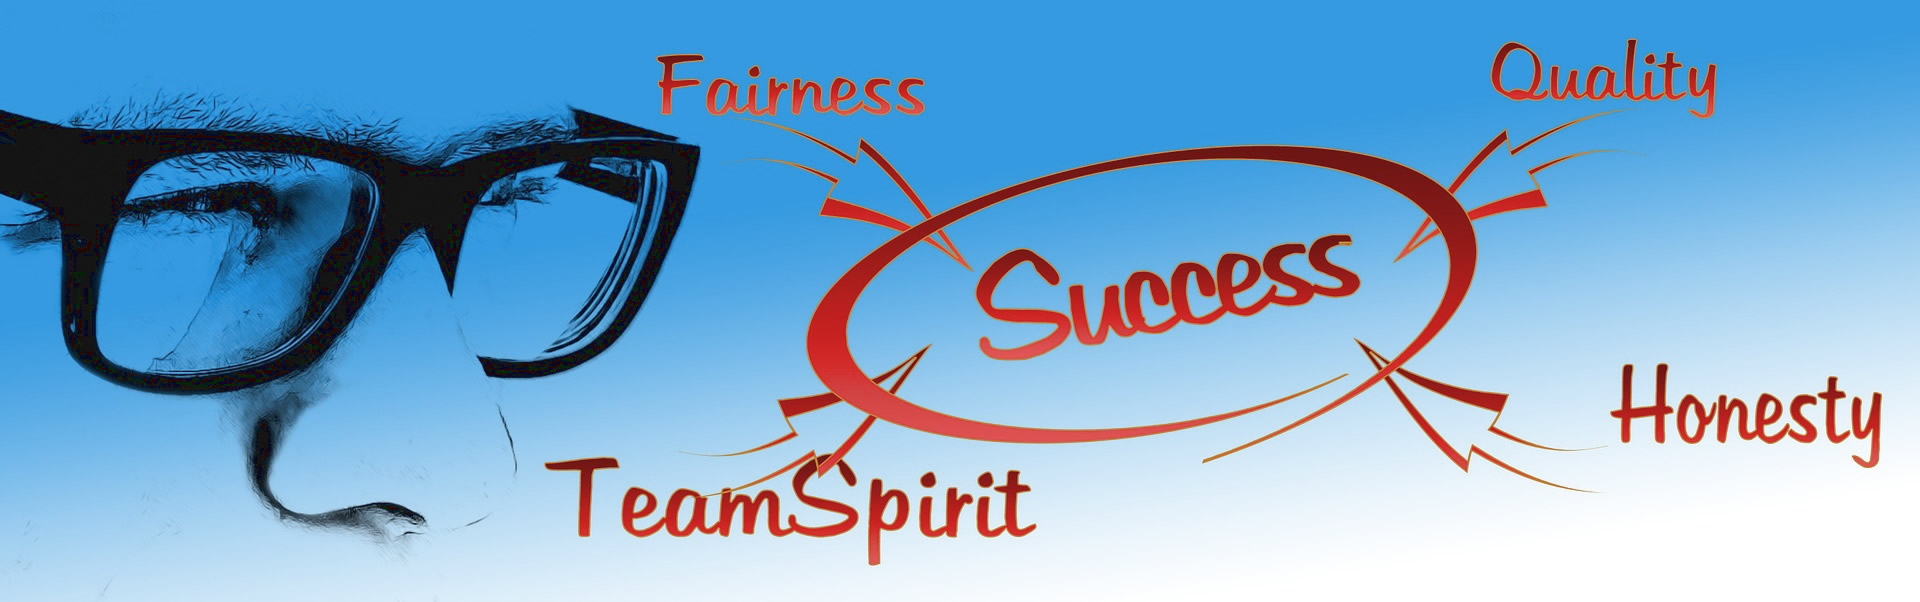 Fairness, Quality, Honesty, Team Spirit, Success